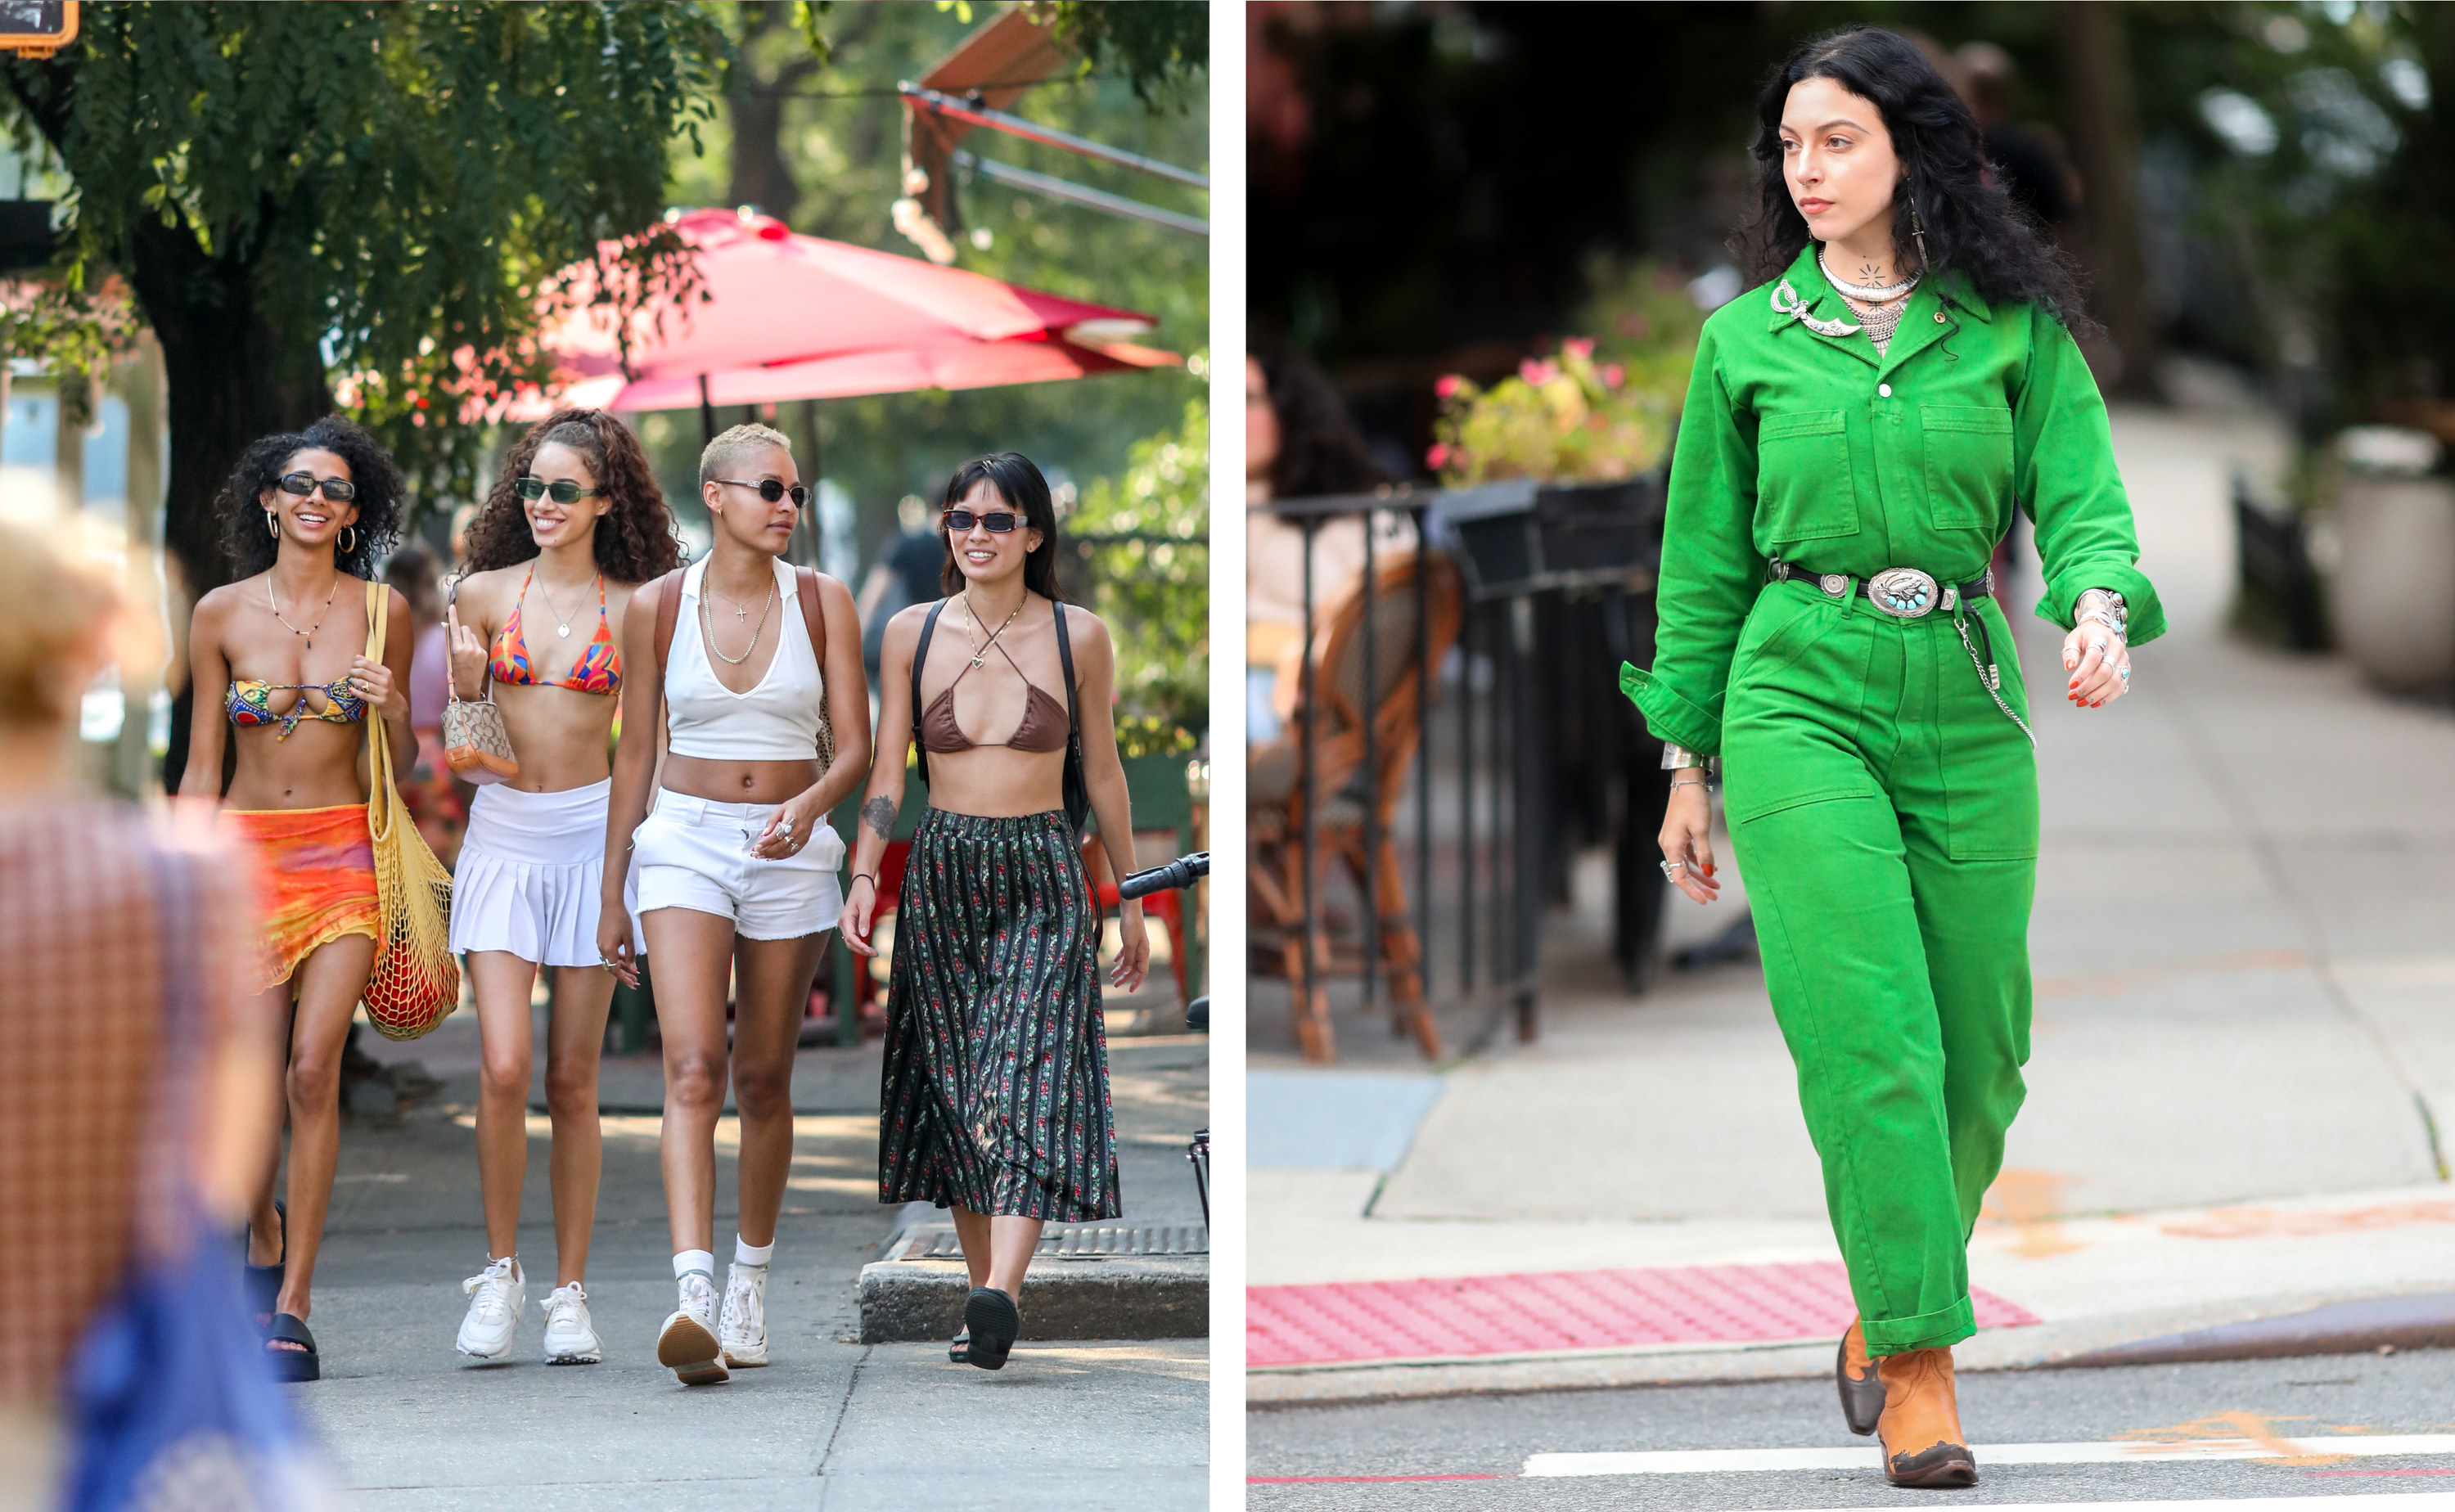 Left, a group of four women in summer clothing, right a woman crossing the street in a green jumpsuit